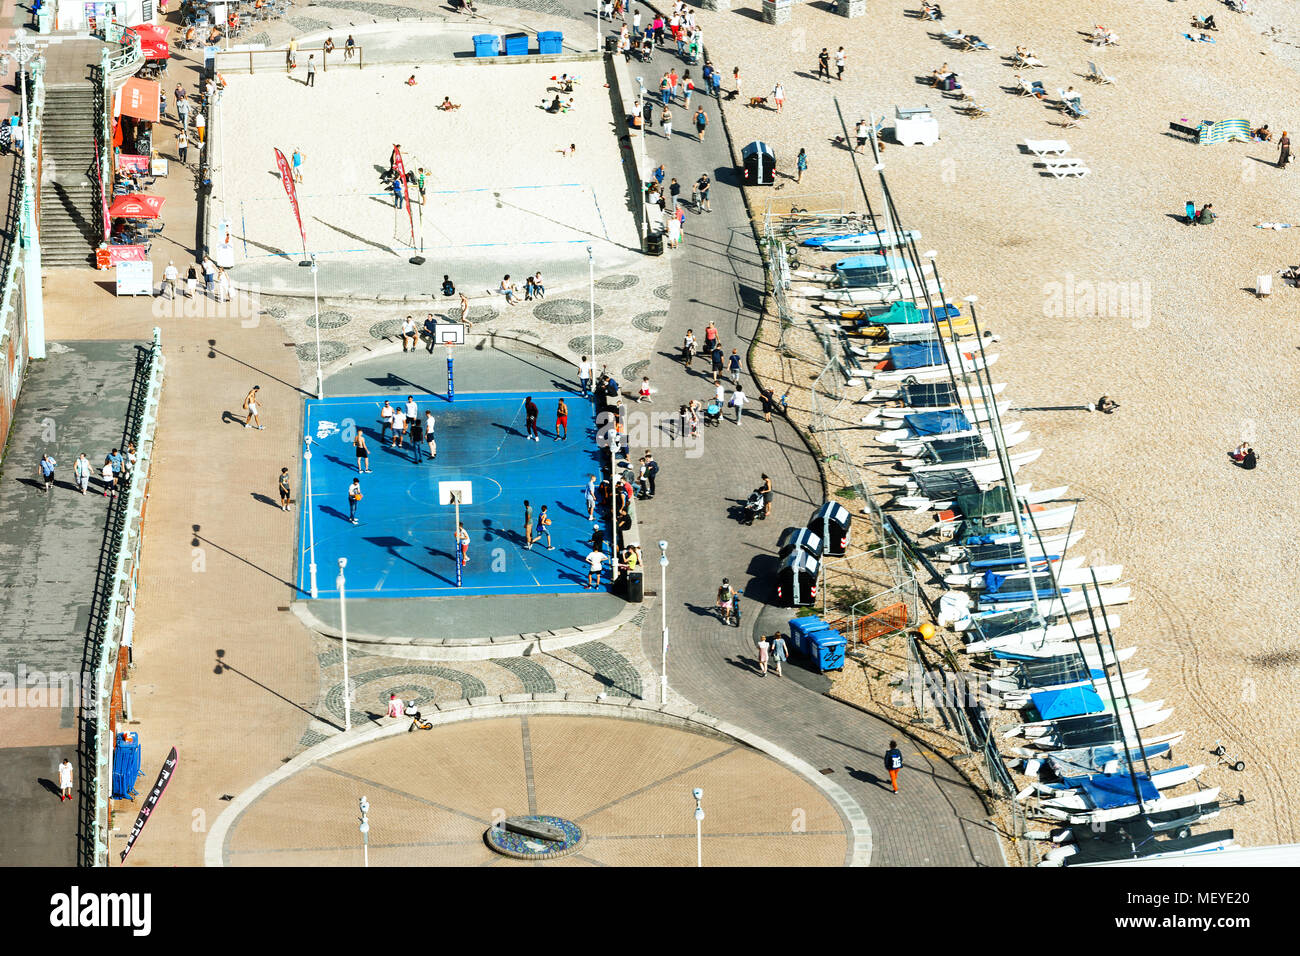 Aerial view of Brighton, people play basketball on court , parking for yachts - Stock Image